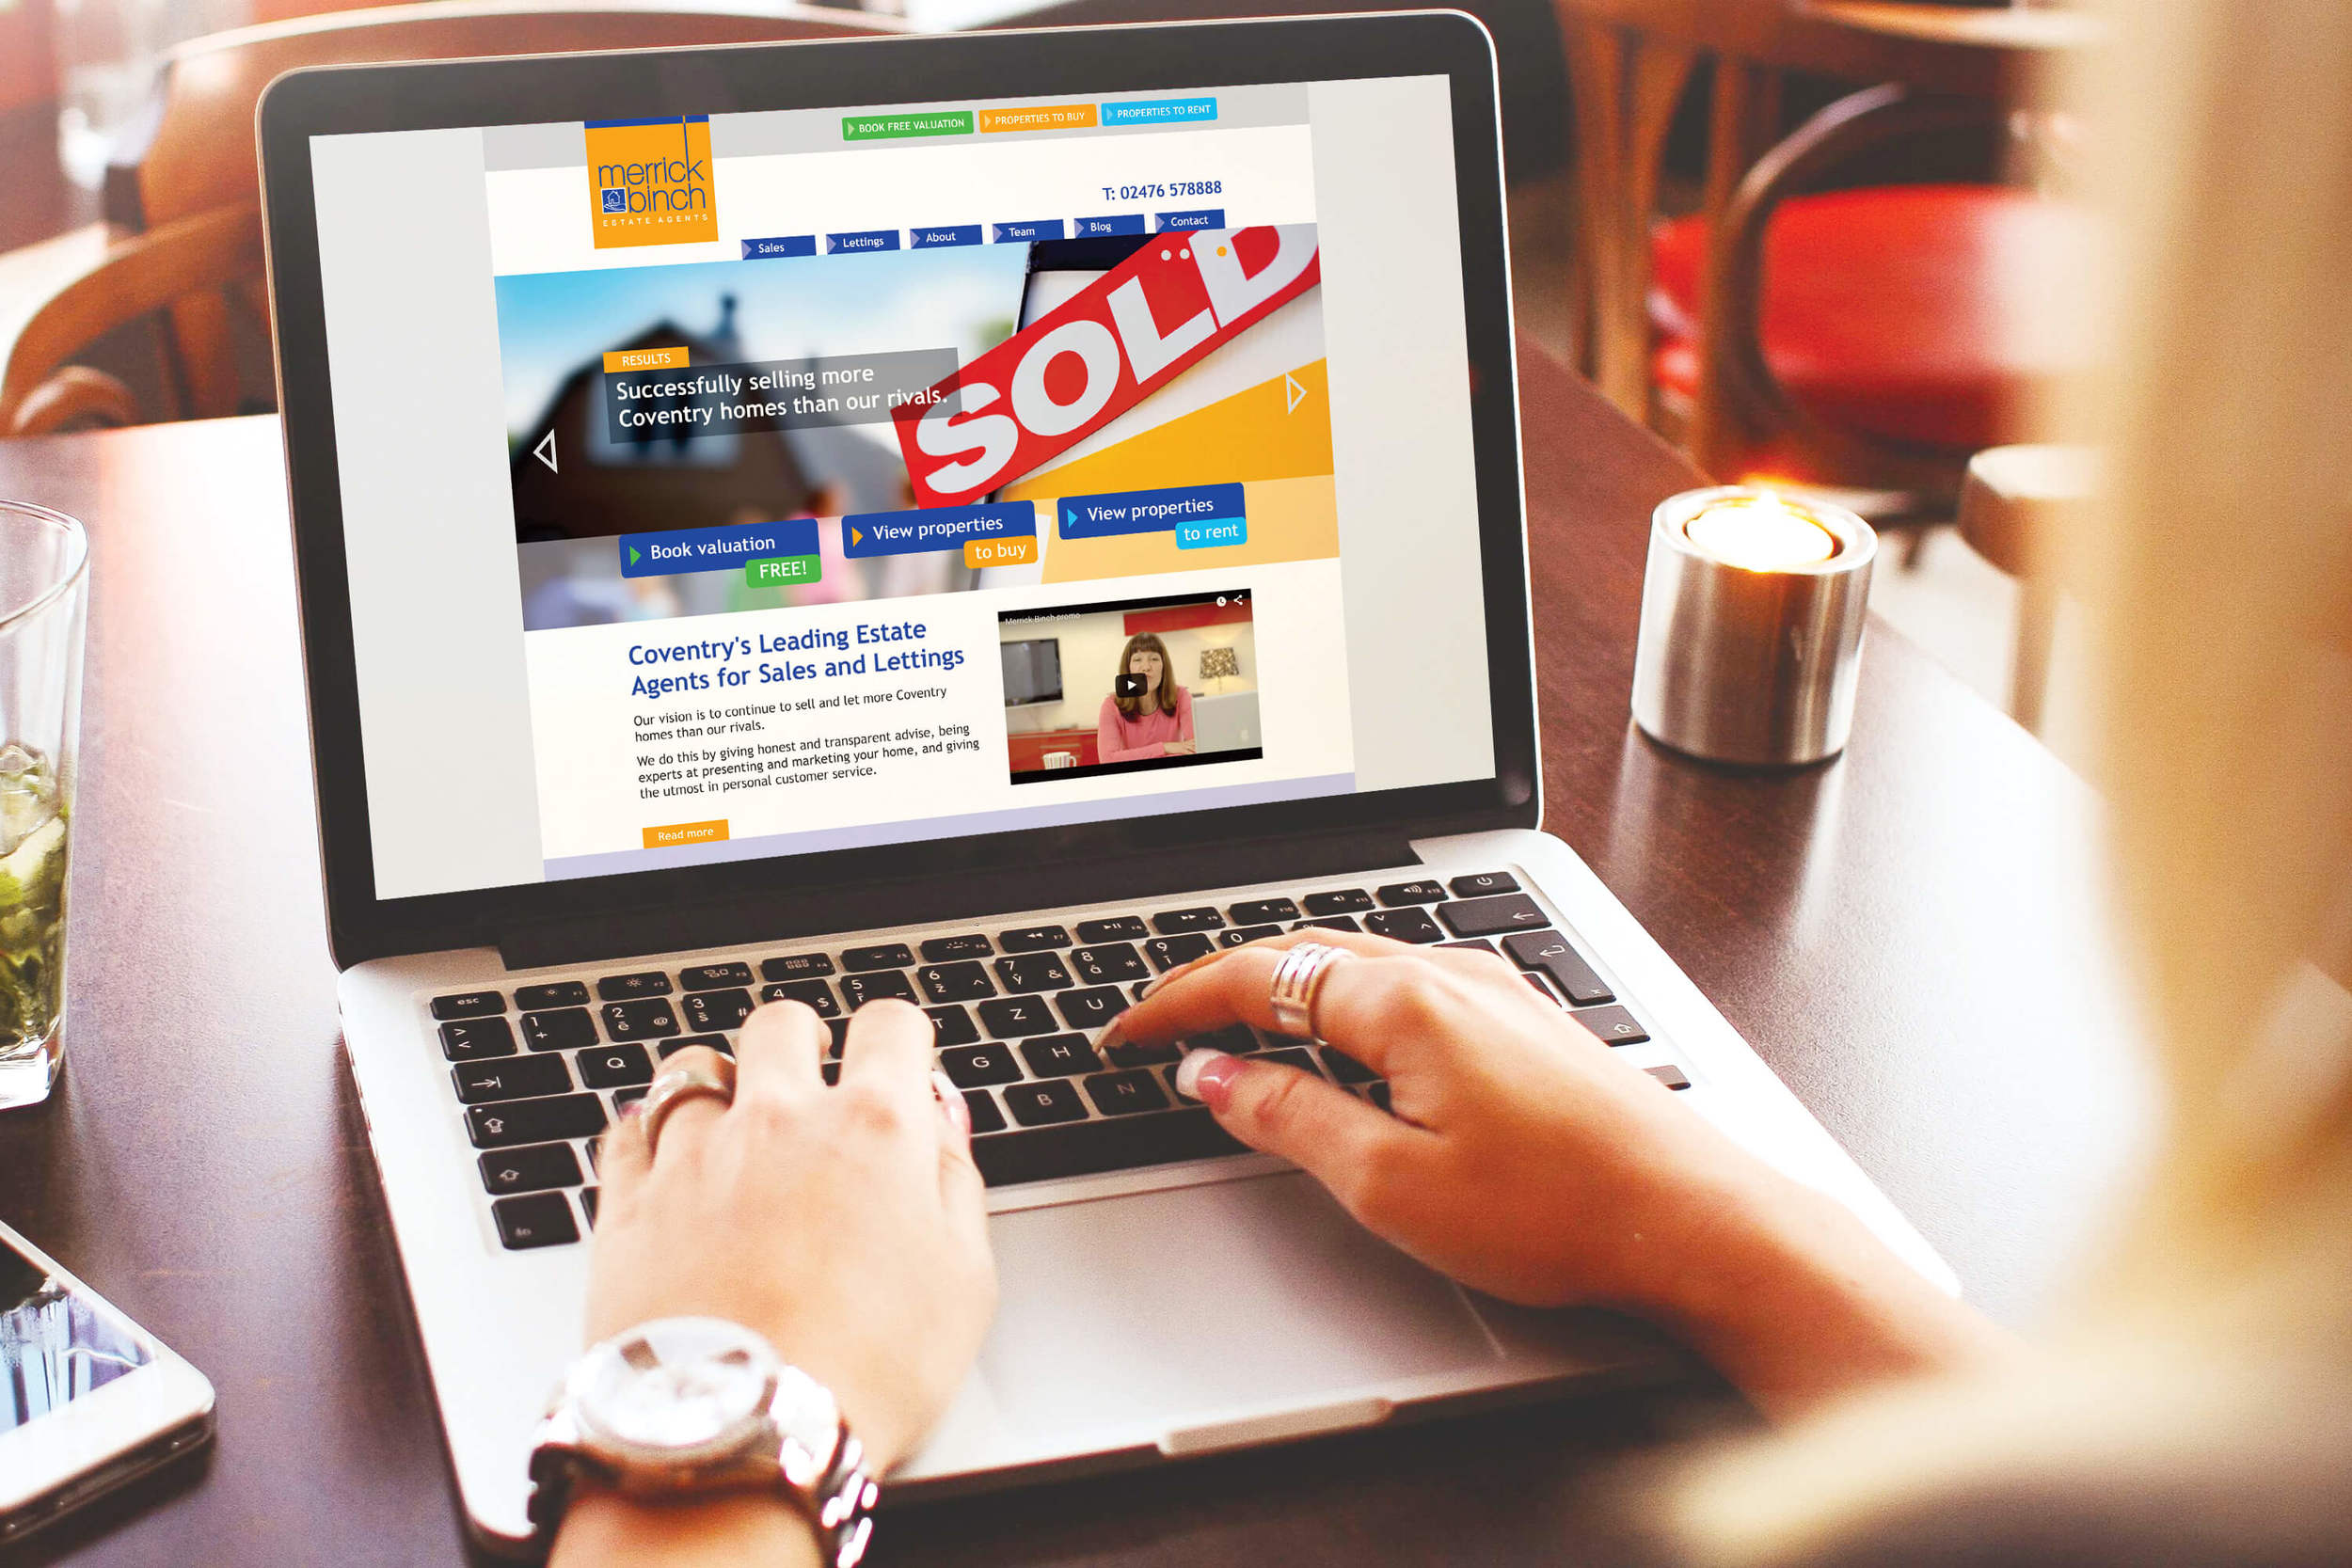 Linking to Rightmoved enabled quick and easy property uploads and searches.